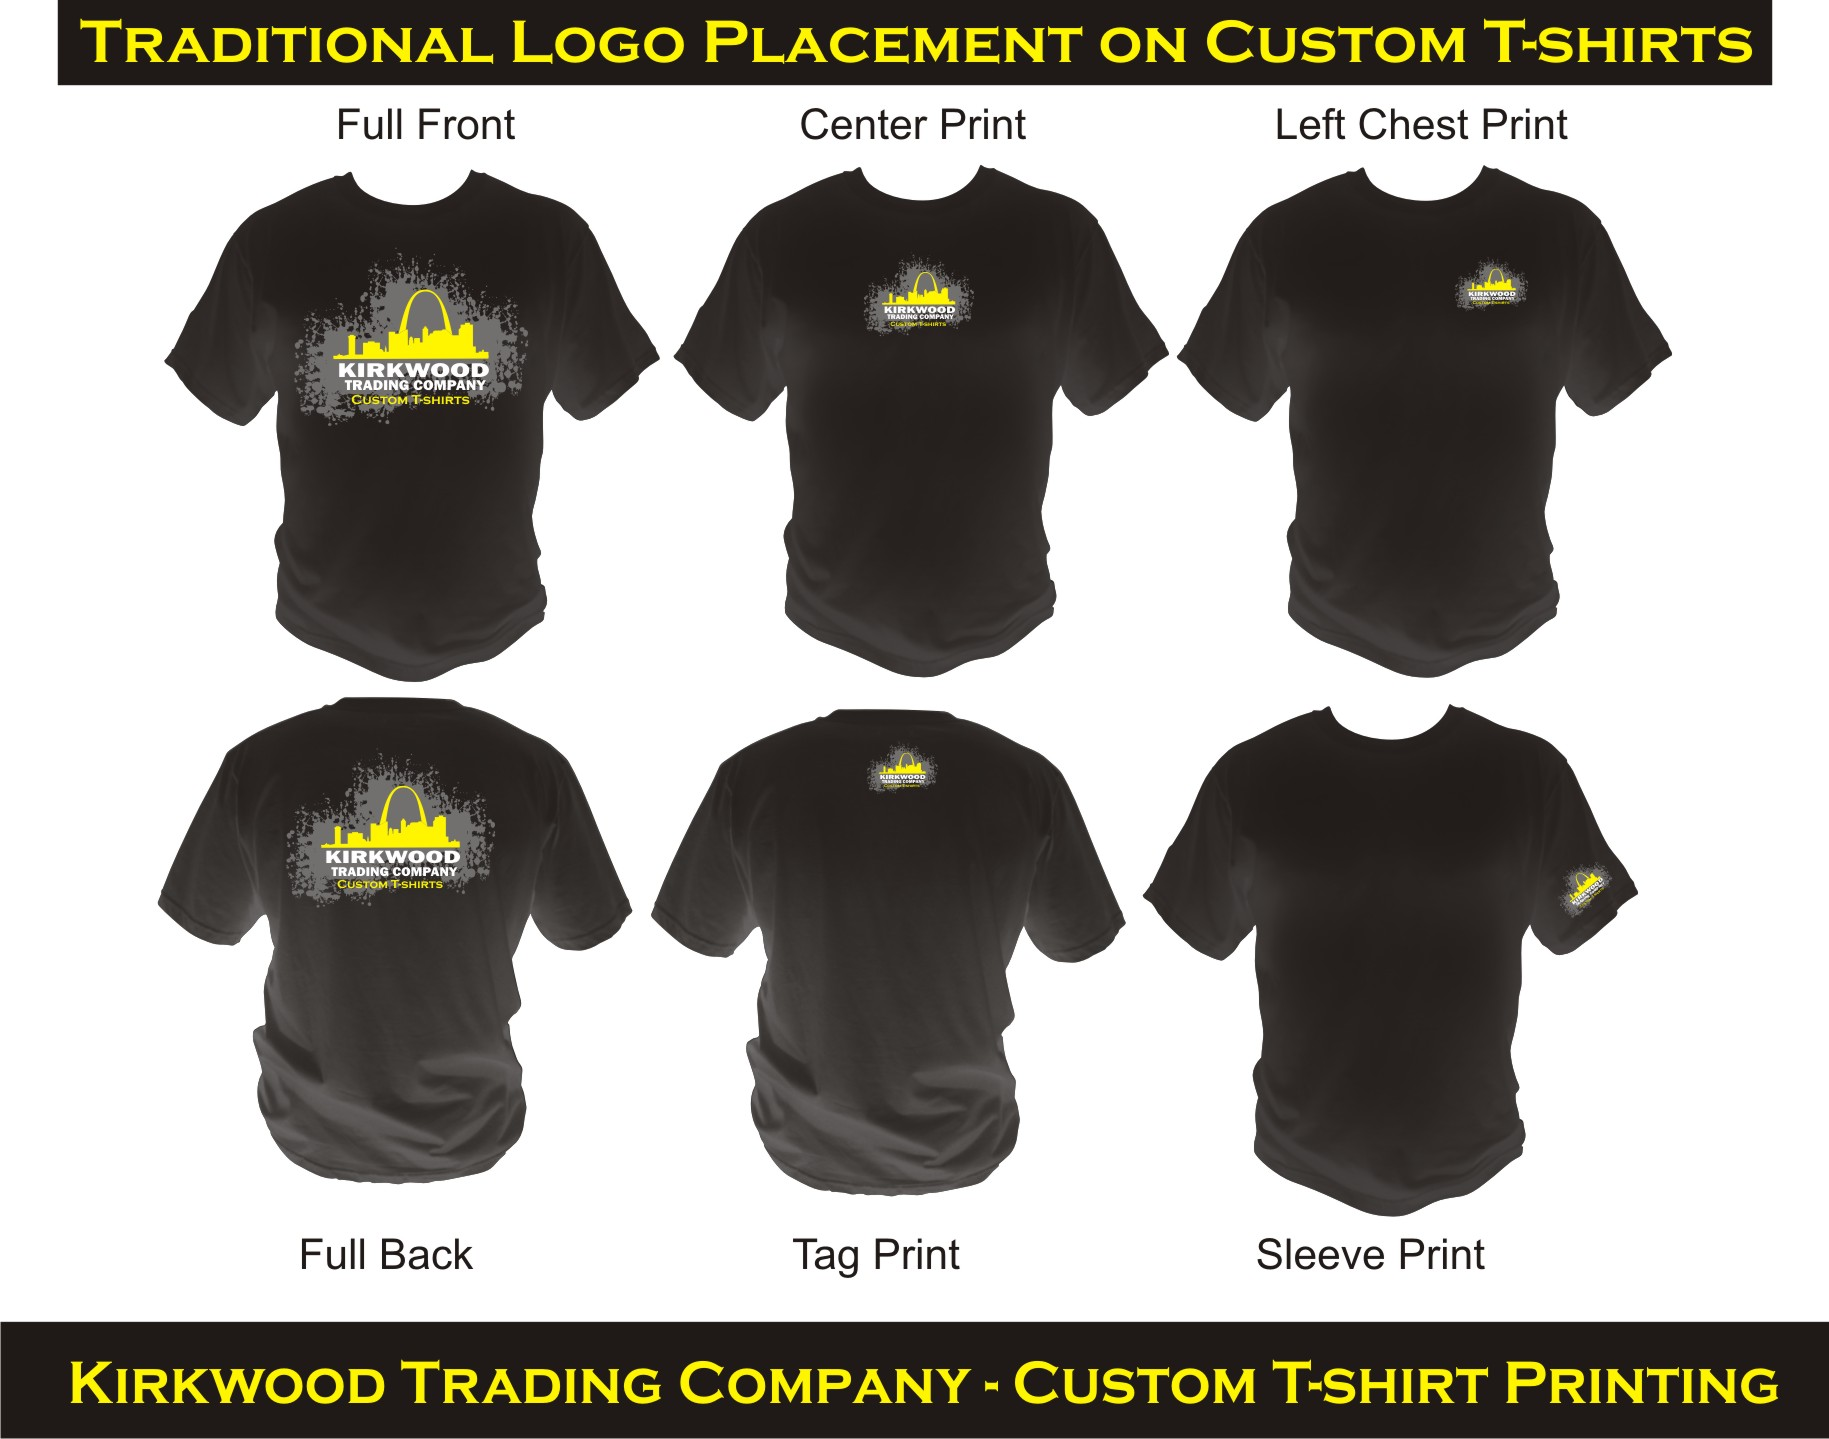 Logo Placement guide for custom t-shirts - St. Louis